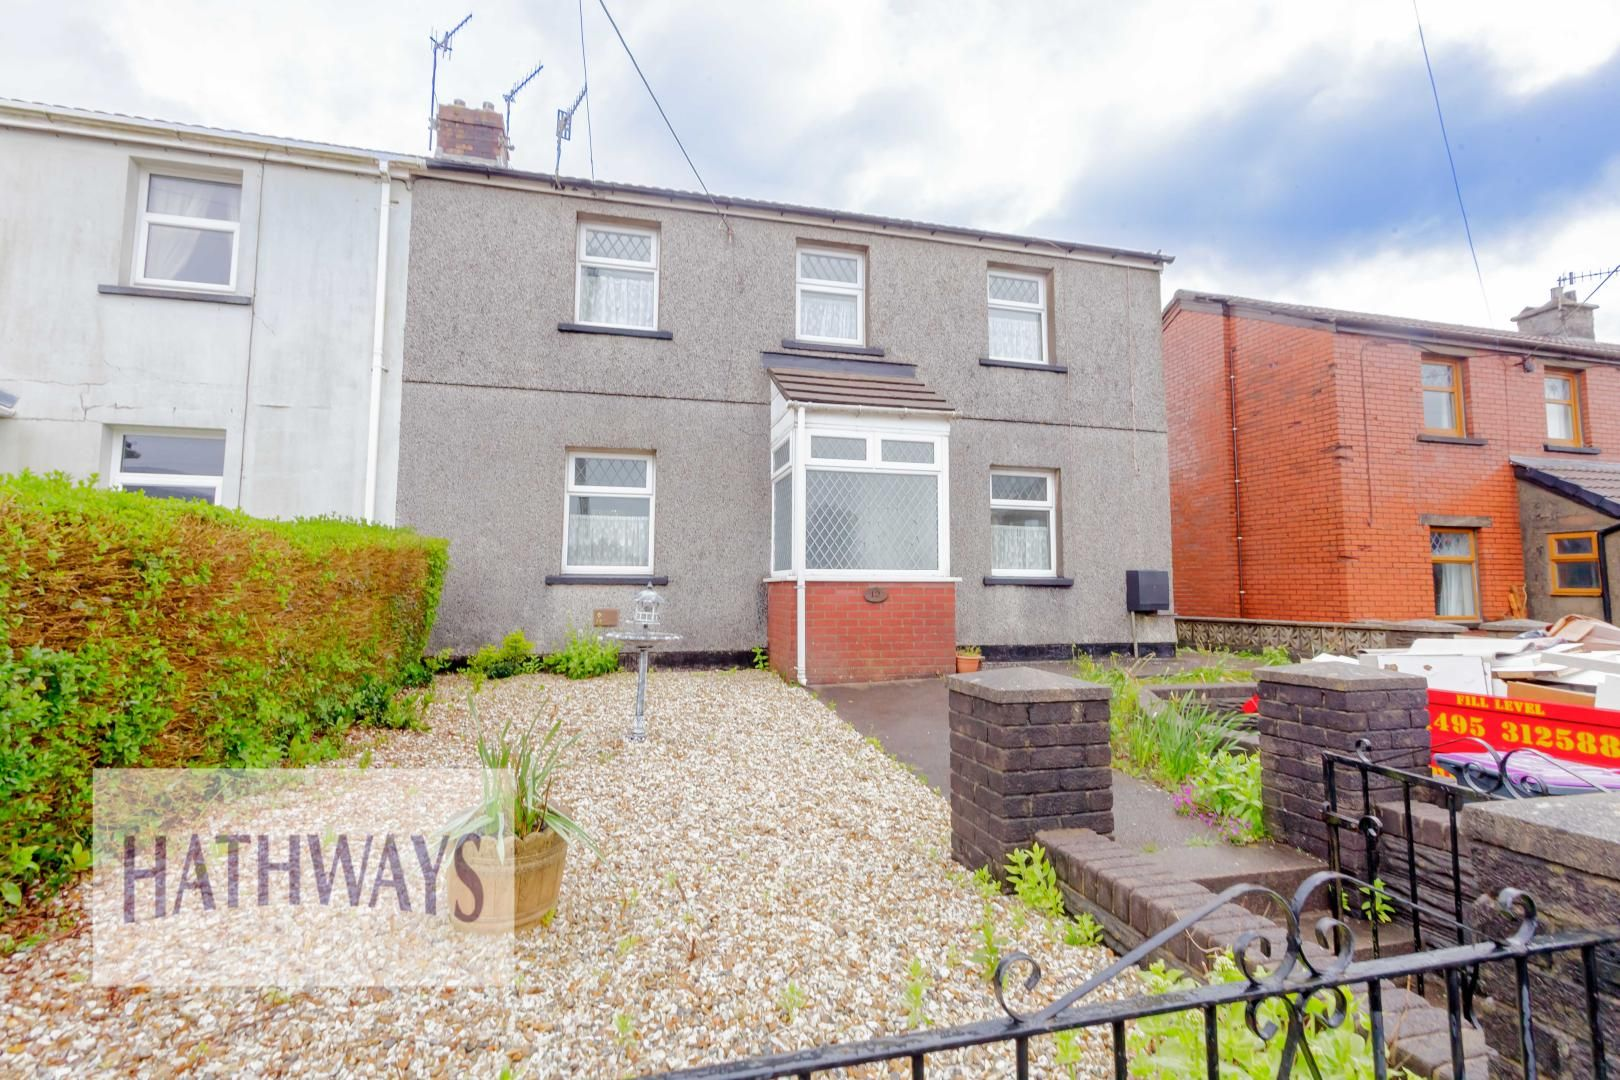 3 bed house for sale in Brynwern, NP4